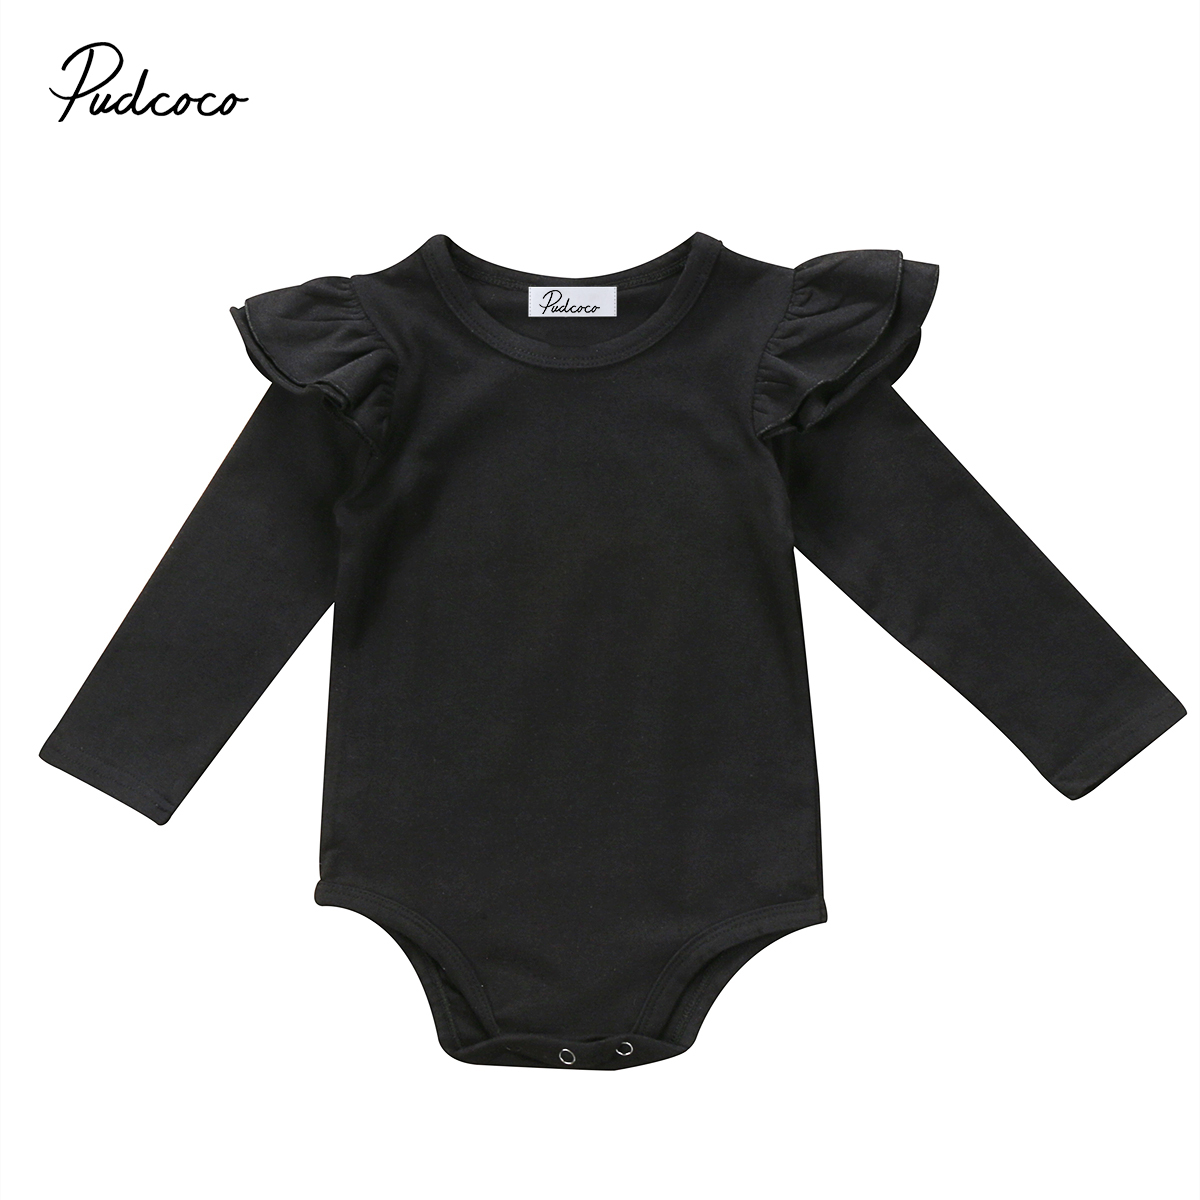 Cute Newborn Baby Girl Long Sleeve Ruffles Bodysuit Jumpsuit White Pure Black Outfit Clothes 0-18M